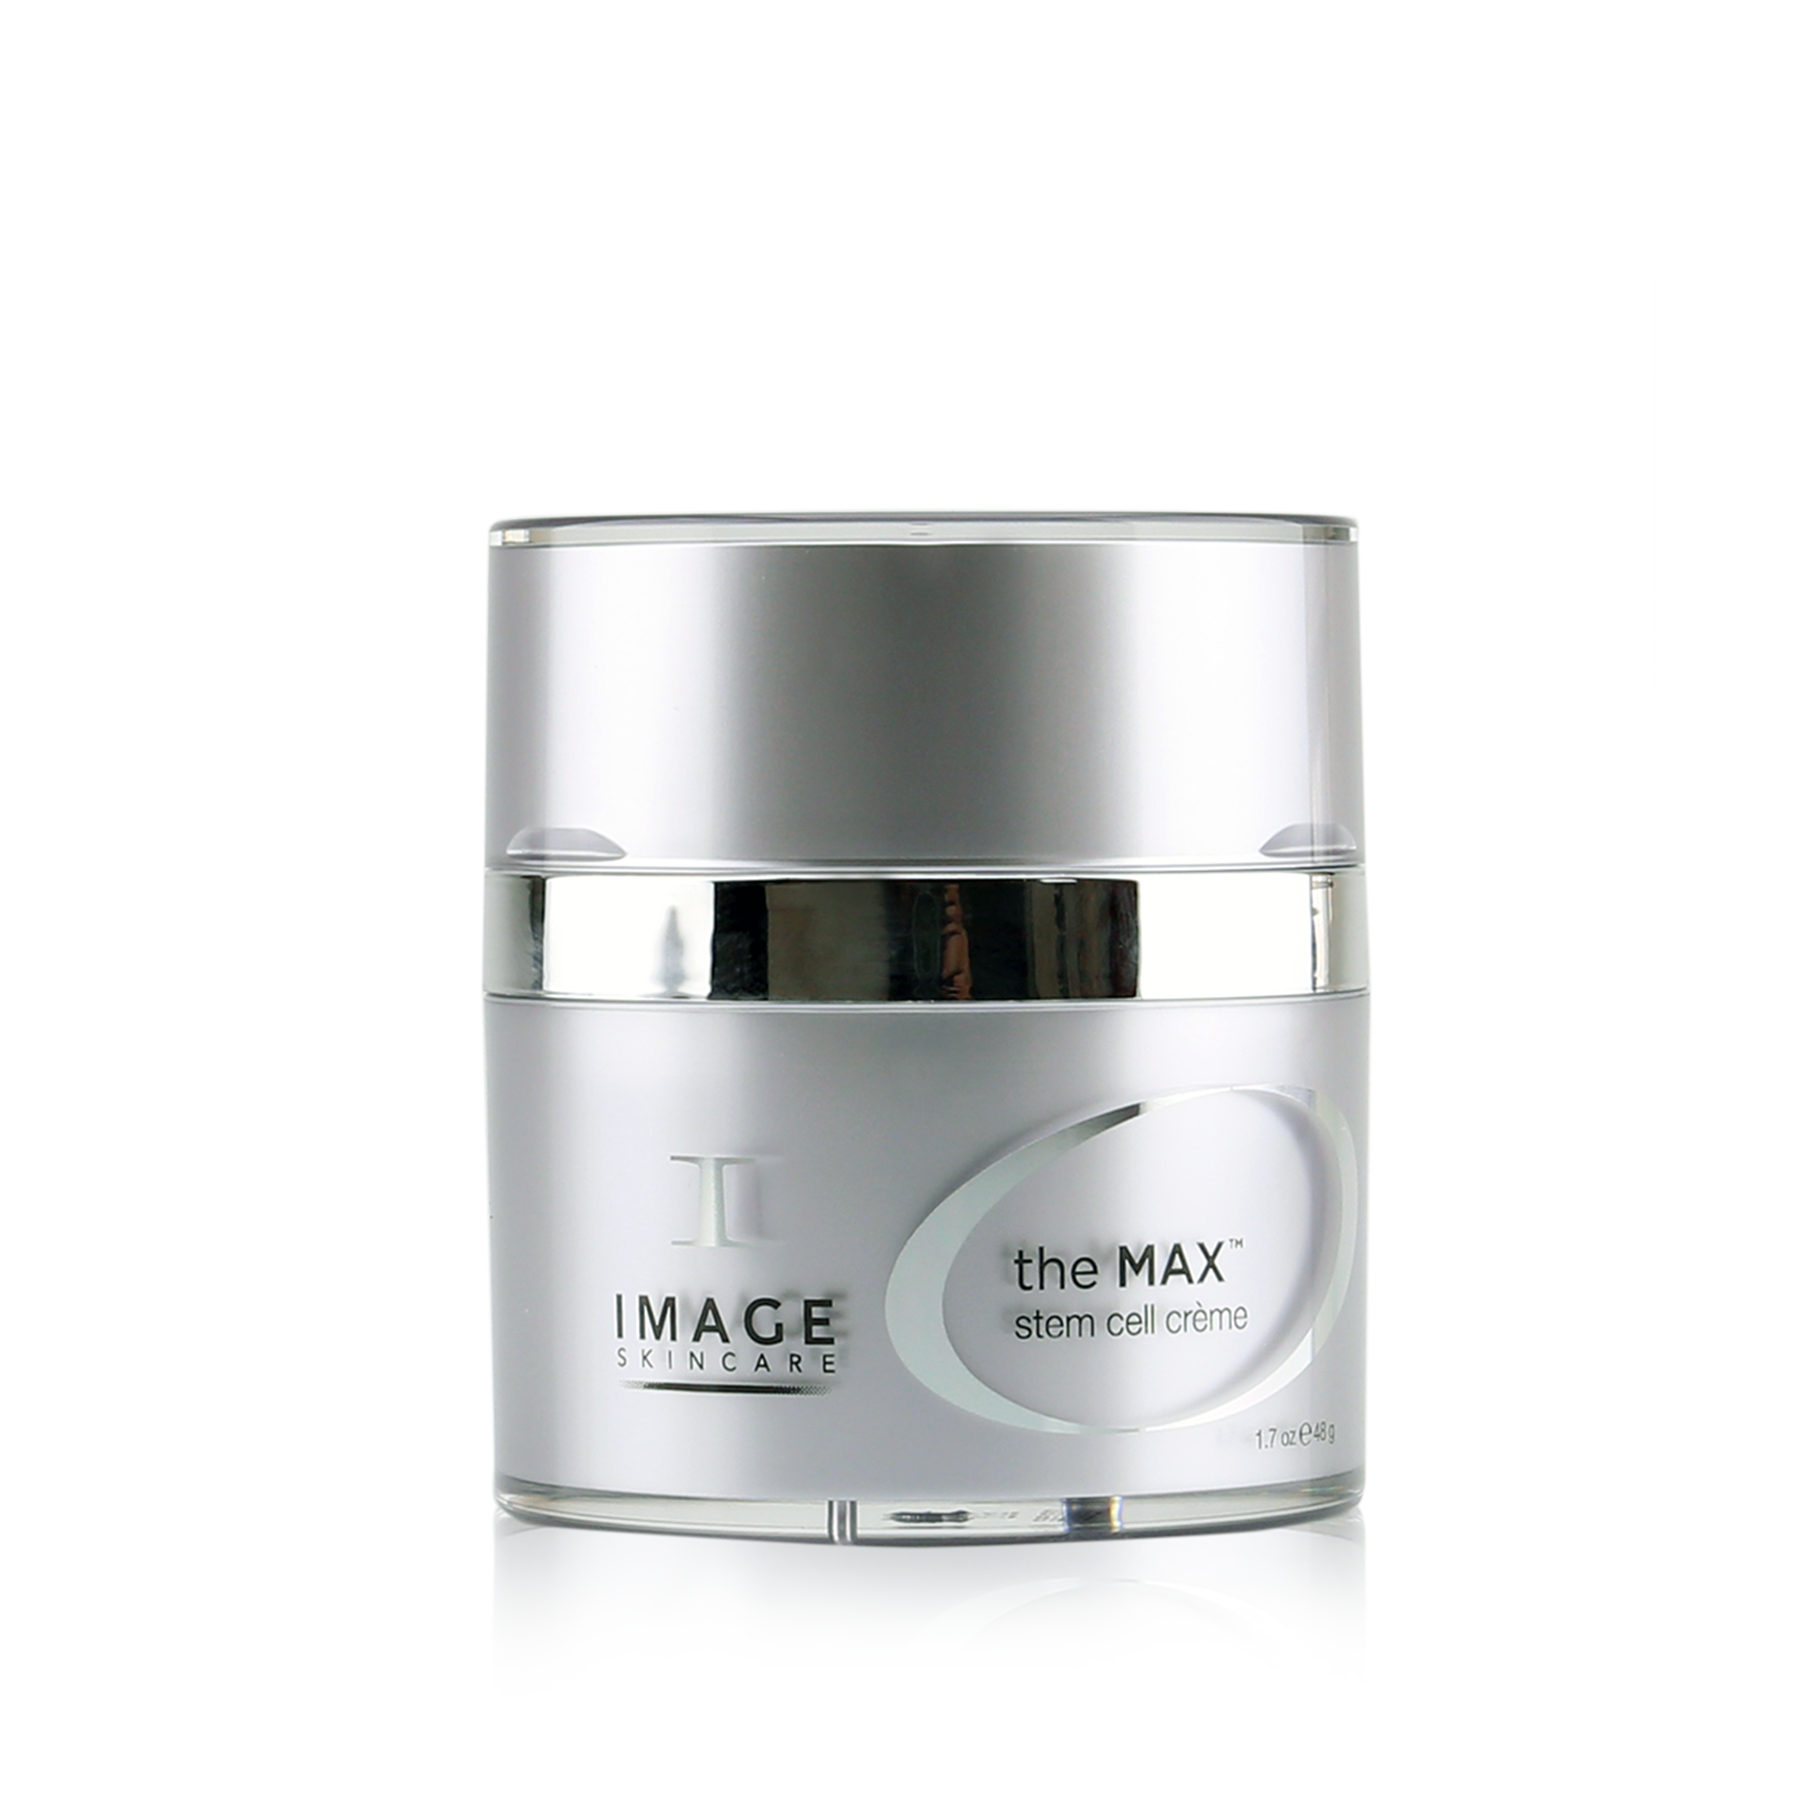 THE-MAX-STEM-CELL-CREME